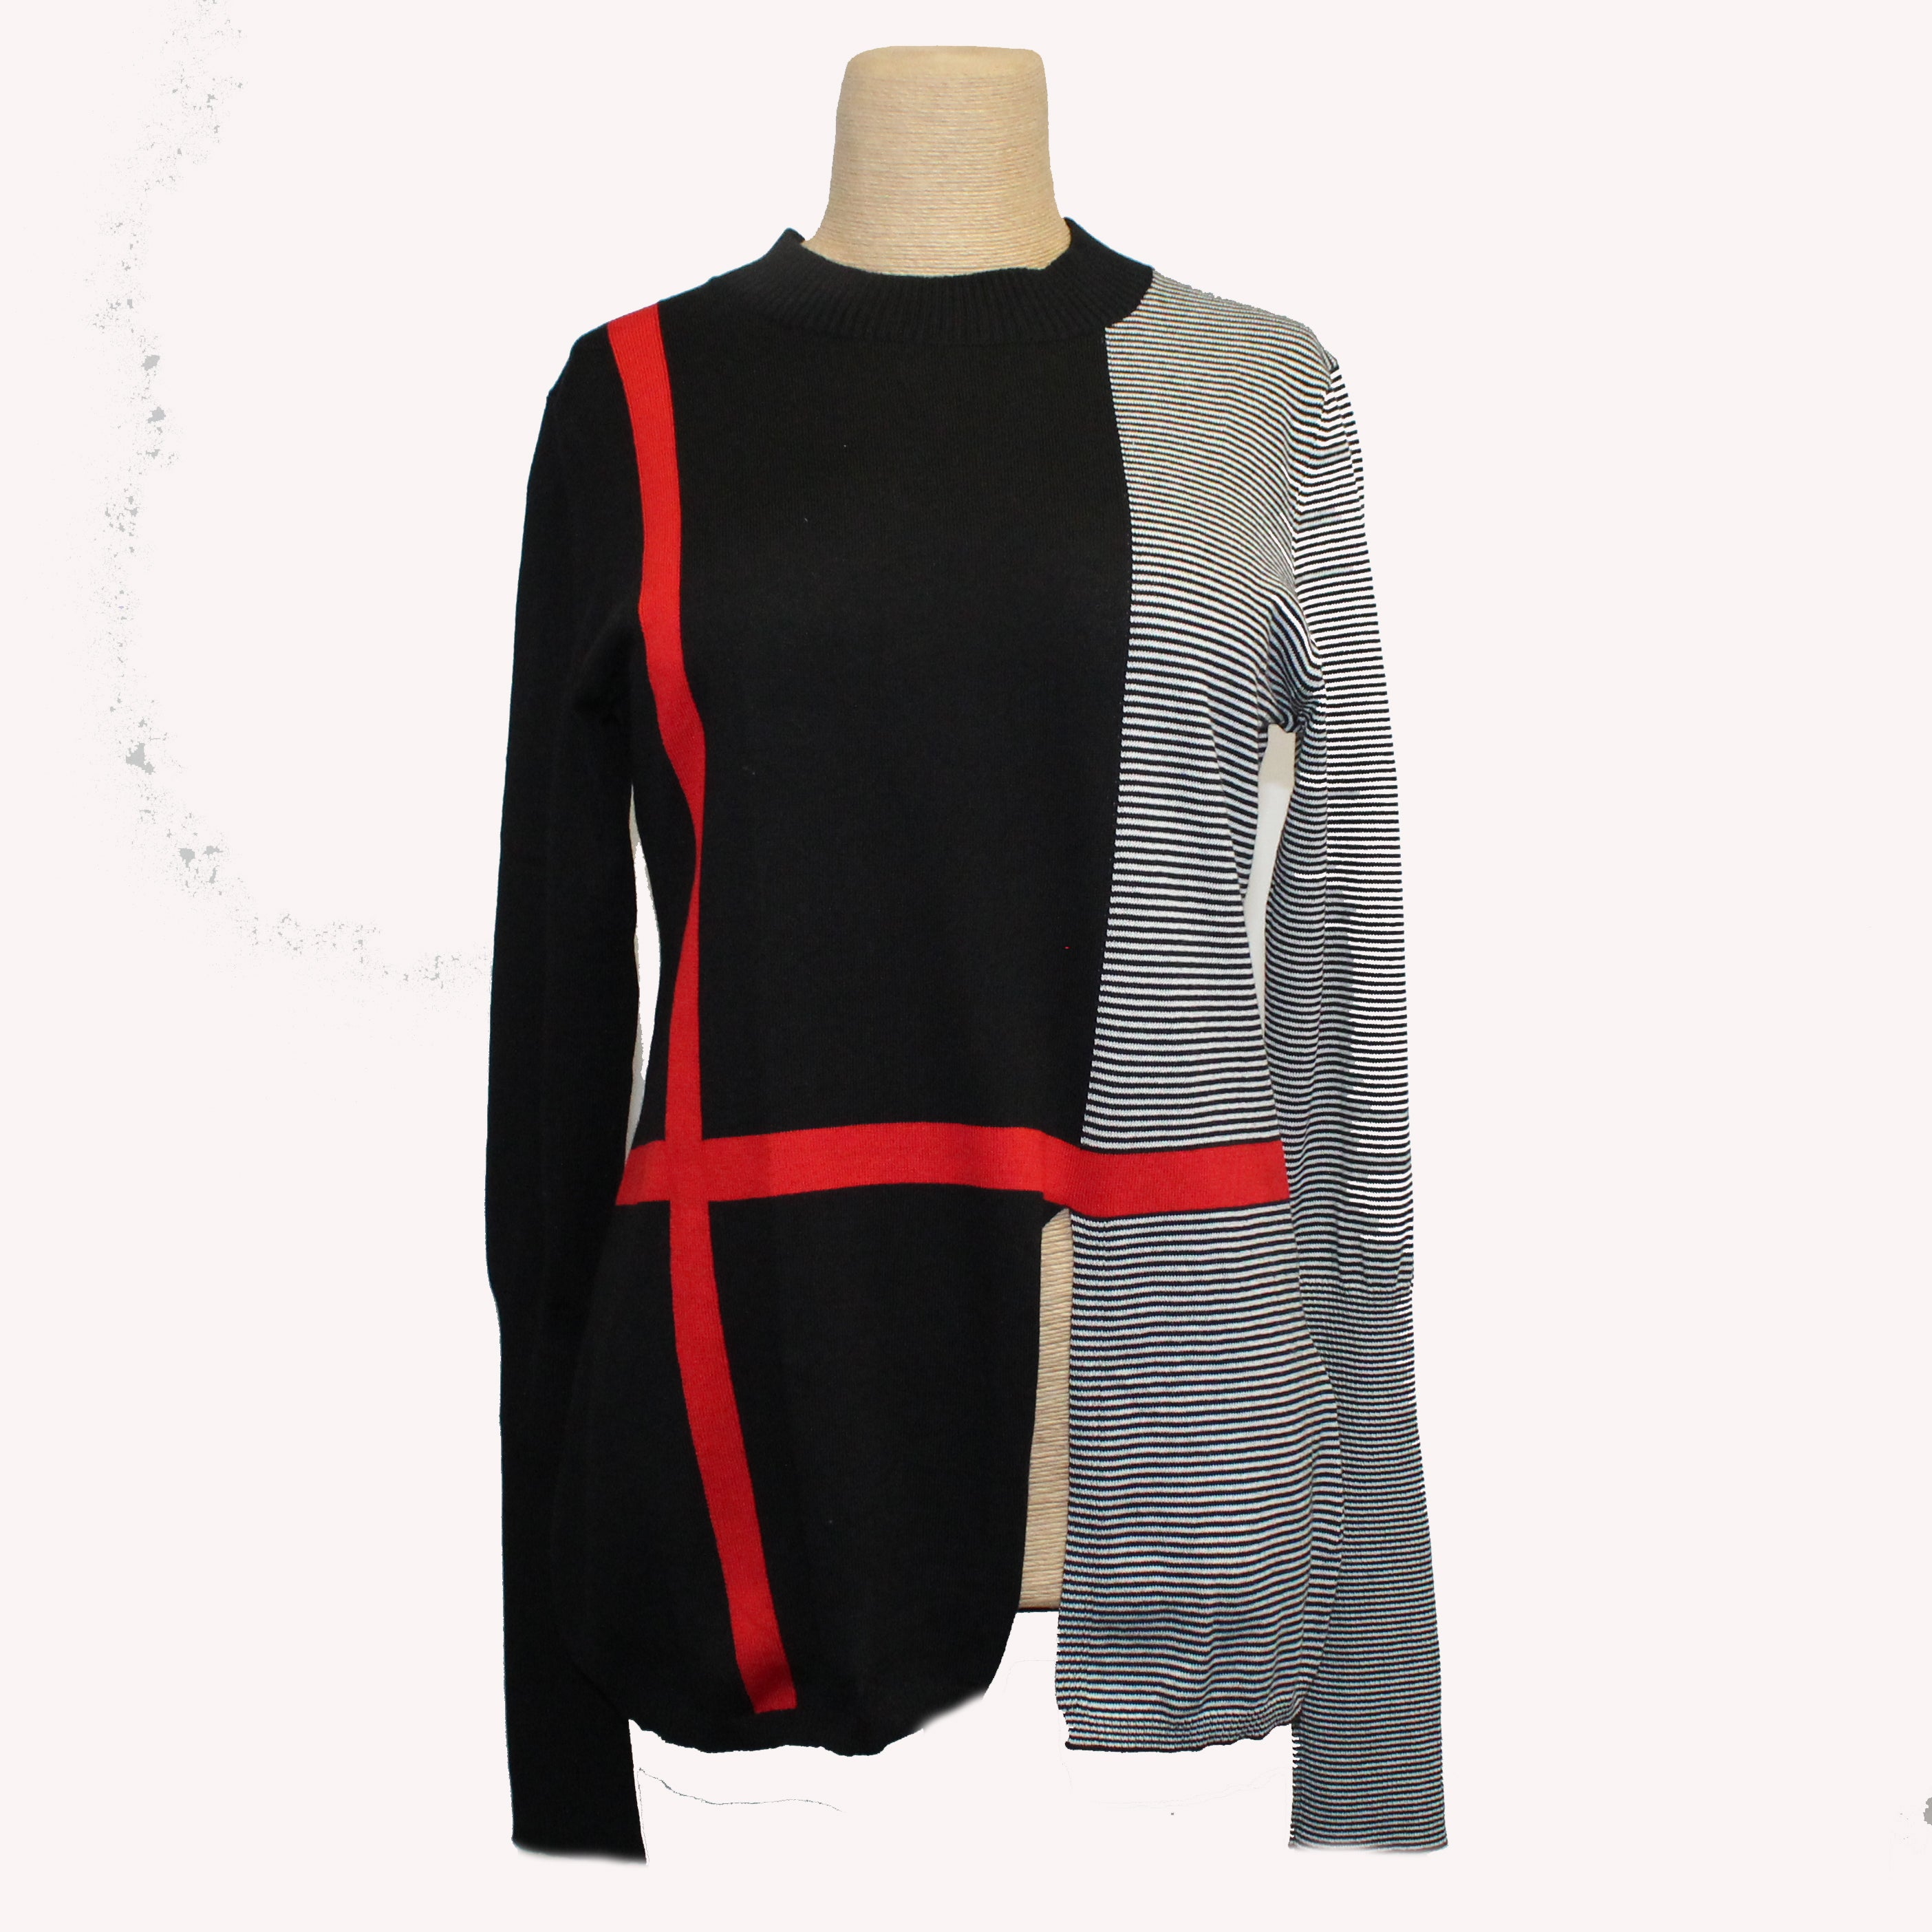 Kim Bernardin Sweater, Crew Neck, Red/Black/White, XS